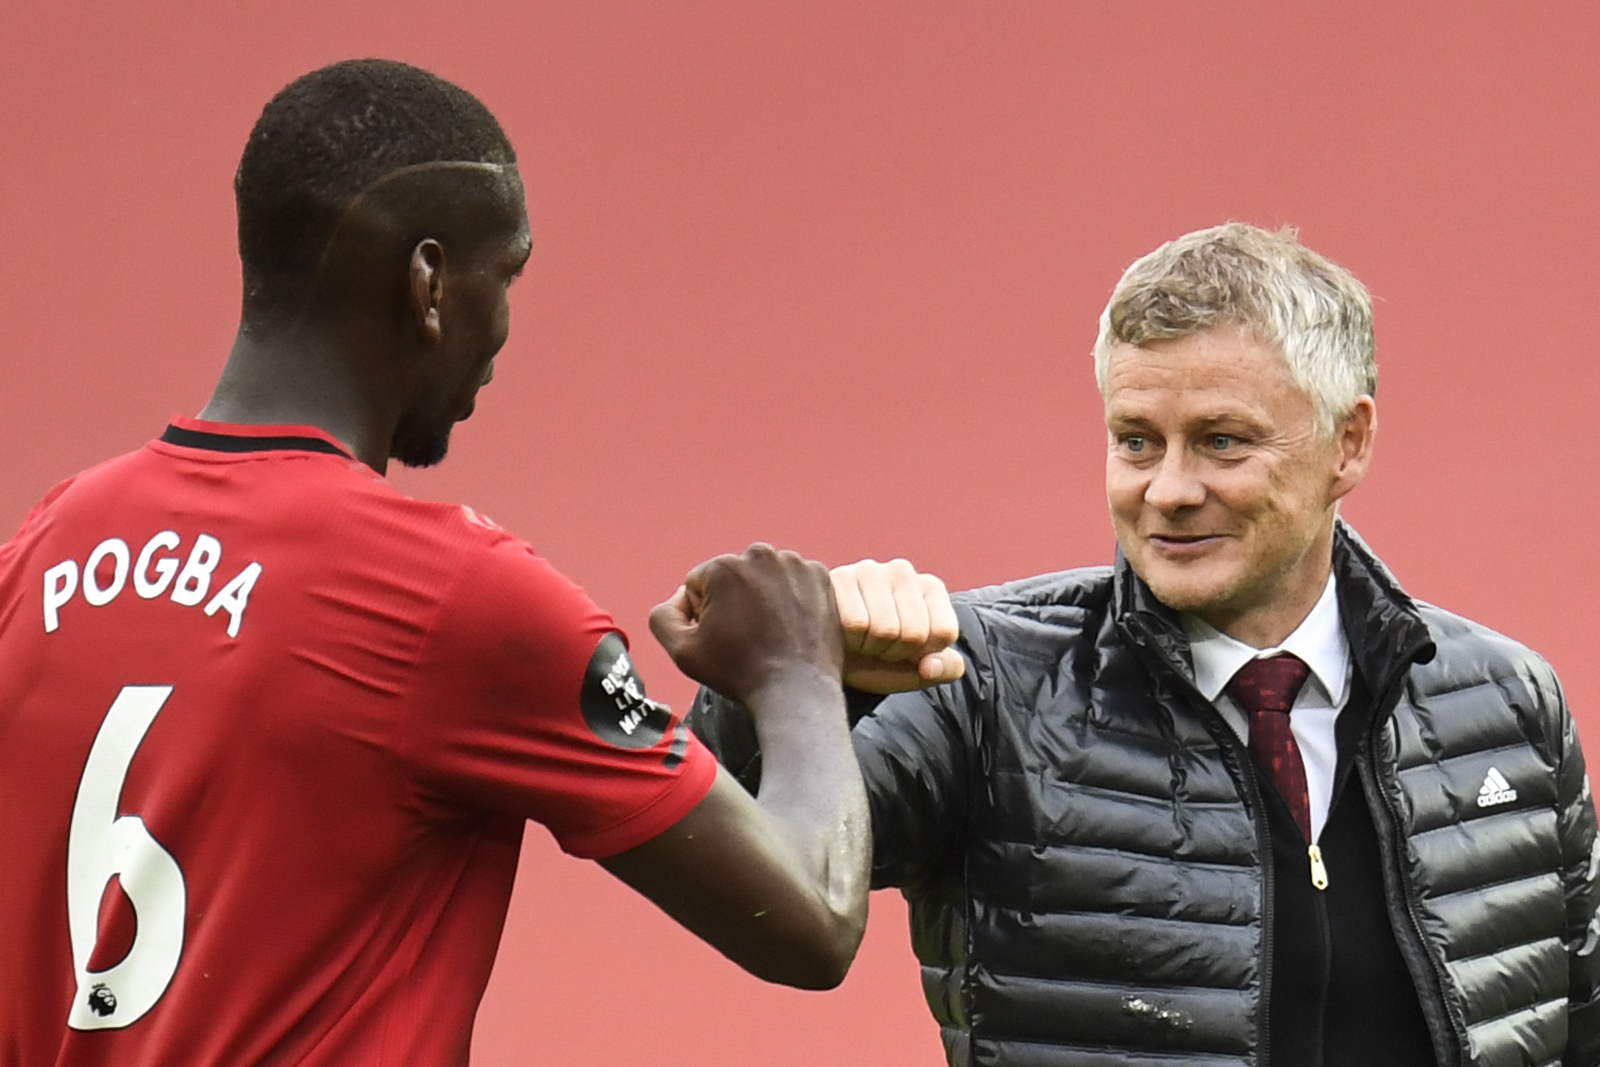 Manchester Uniteds Norwegian manager Ole Gunnar Solskjaer (R) congrtulates Manchester Uniteds French midfielder Paul lt;HIT gt;Pogba lt;/HIT gt; during the English Premier League football match between Manchester United and Bournemouth at Old Trafford in Manchester, north west England, on July 4, 2020. (Photo by PETER POWELL / POOL / AFP) / RESTRICTED TO EDITORIAL USE. No use with unauthorized audio, video, data, fixture lists, club/league logos or live services. Online in-match use limited to 120 images. An additional 40 images may be used in extra time. No video emulation. Social media in-match use limited to 120 images. An additional 40 images may be used in extra time. No use in betting publications, games or single club/league/player publications. /